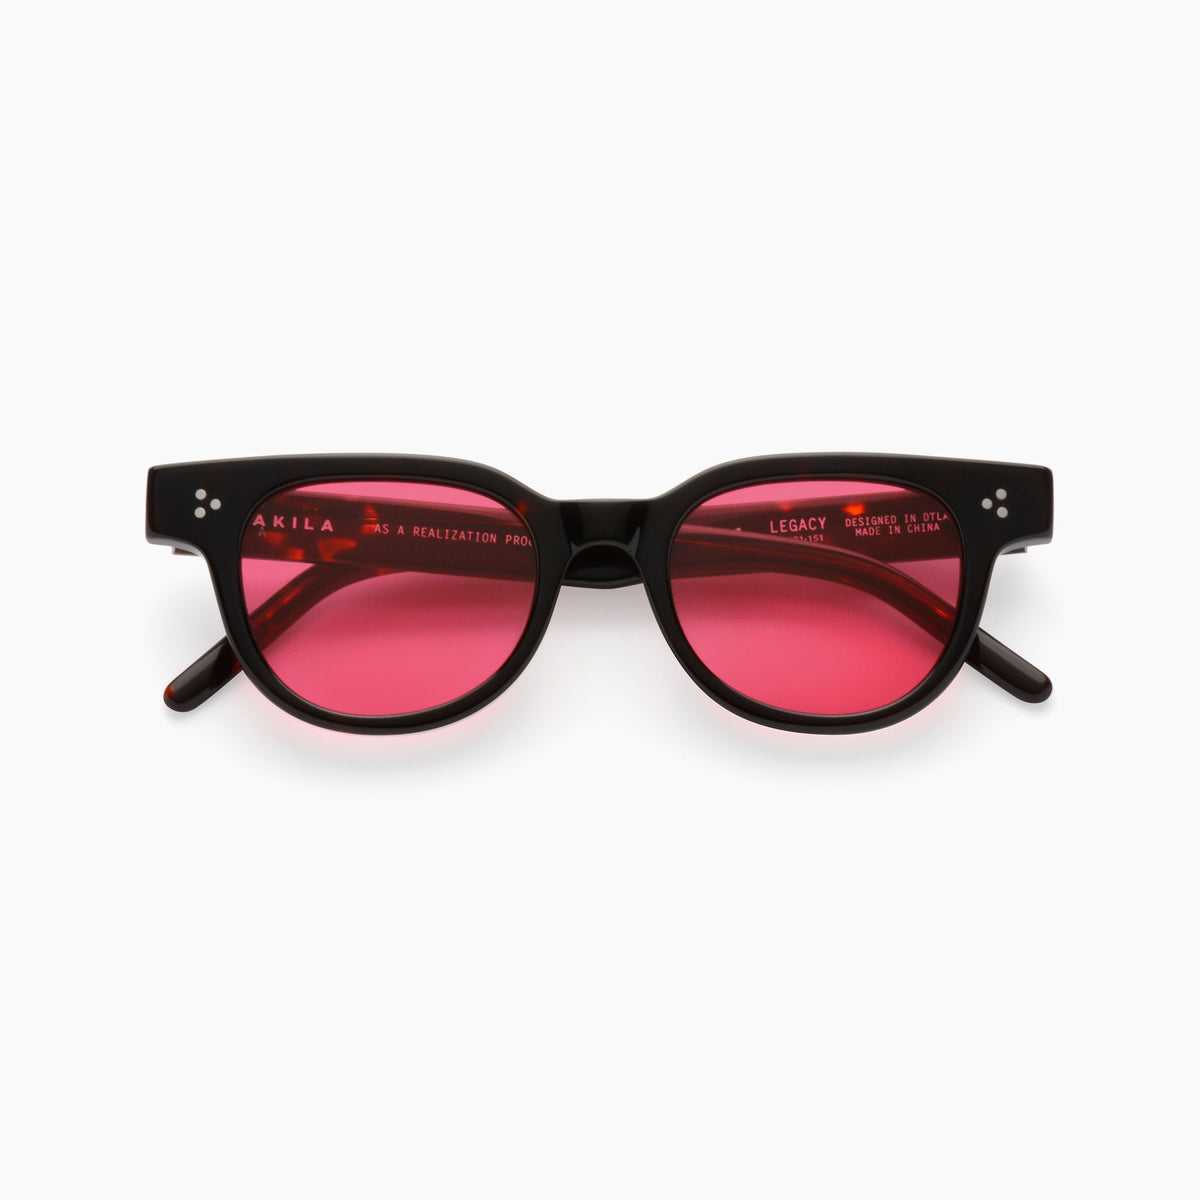 Akila Eyewear Legacy Sunglasses in Tortoise / Rose